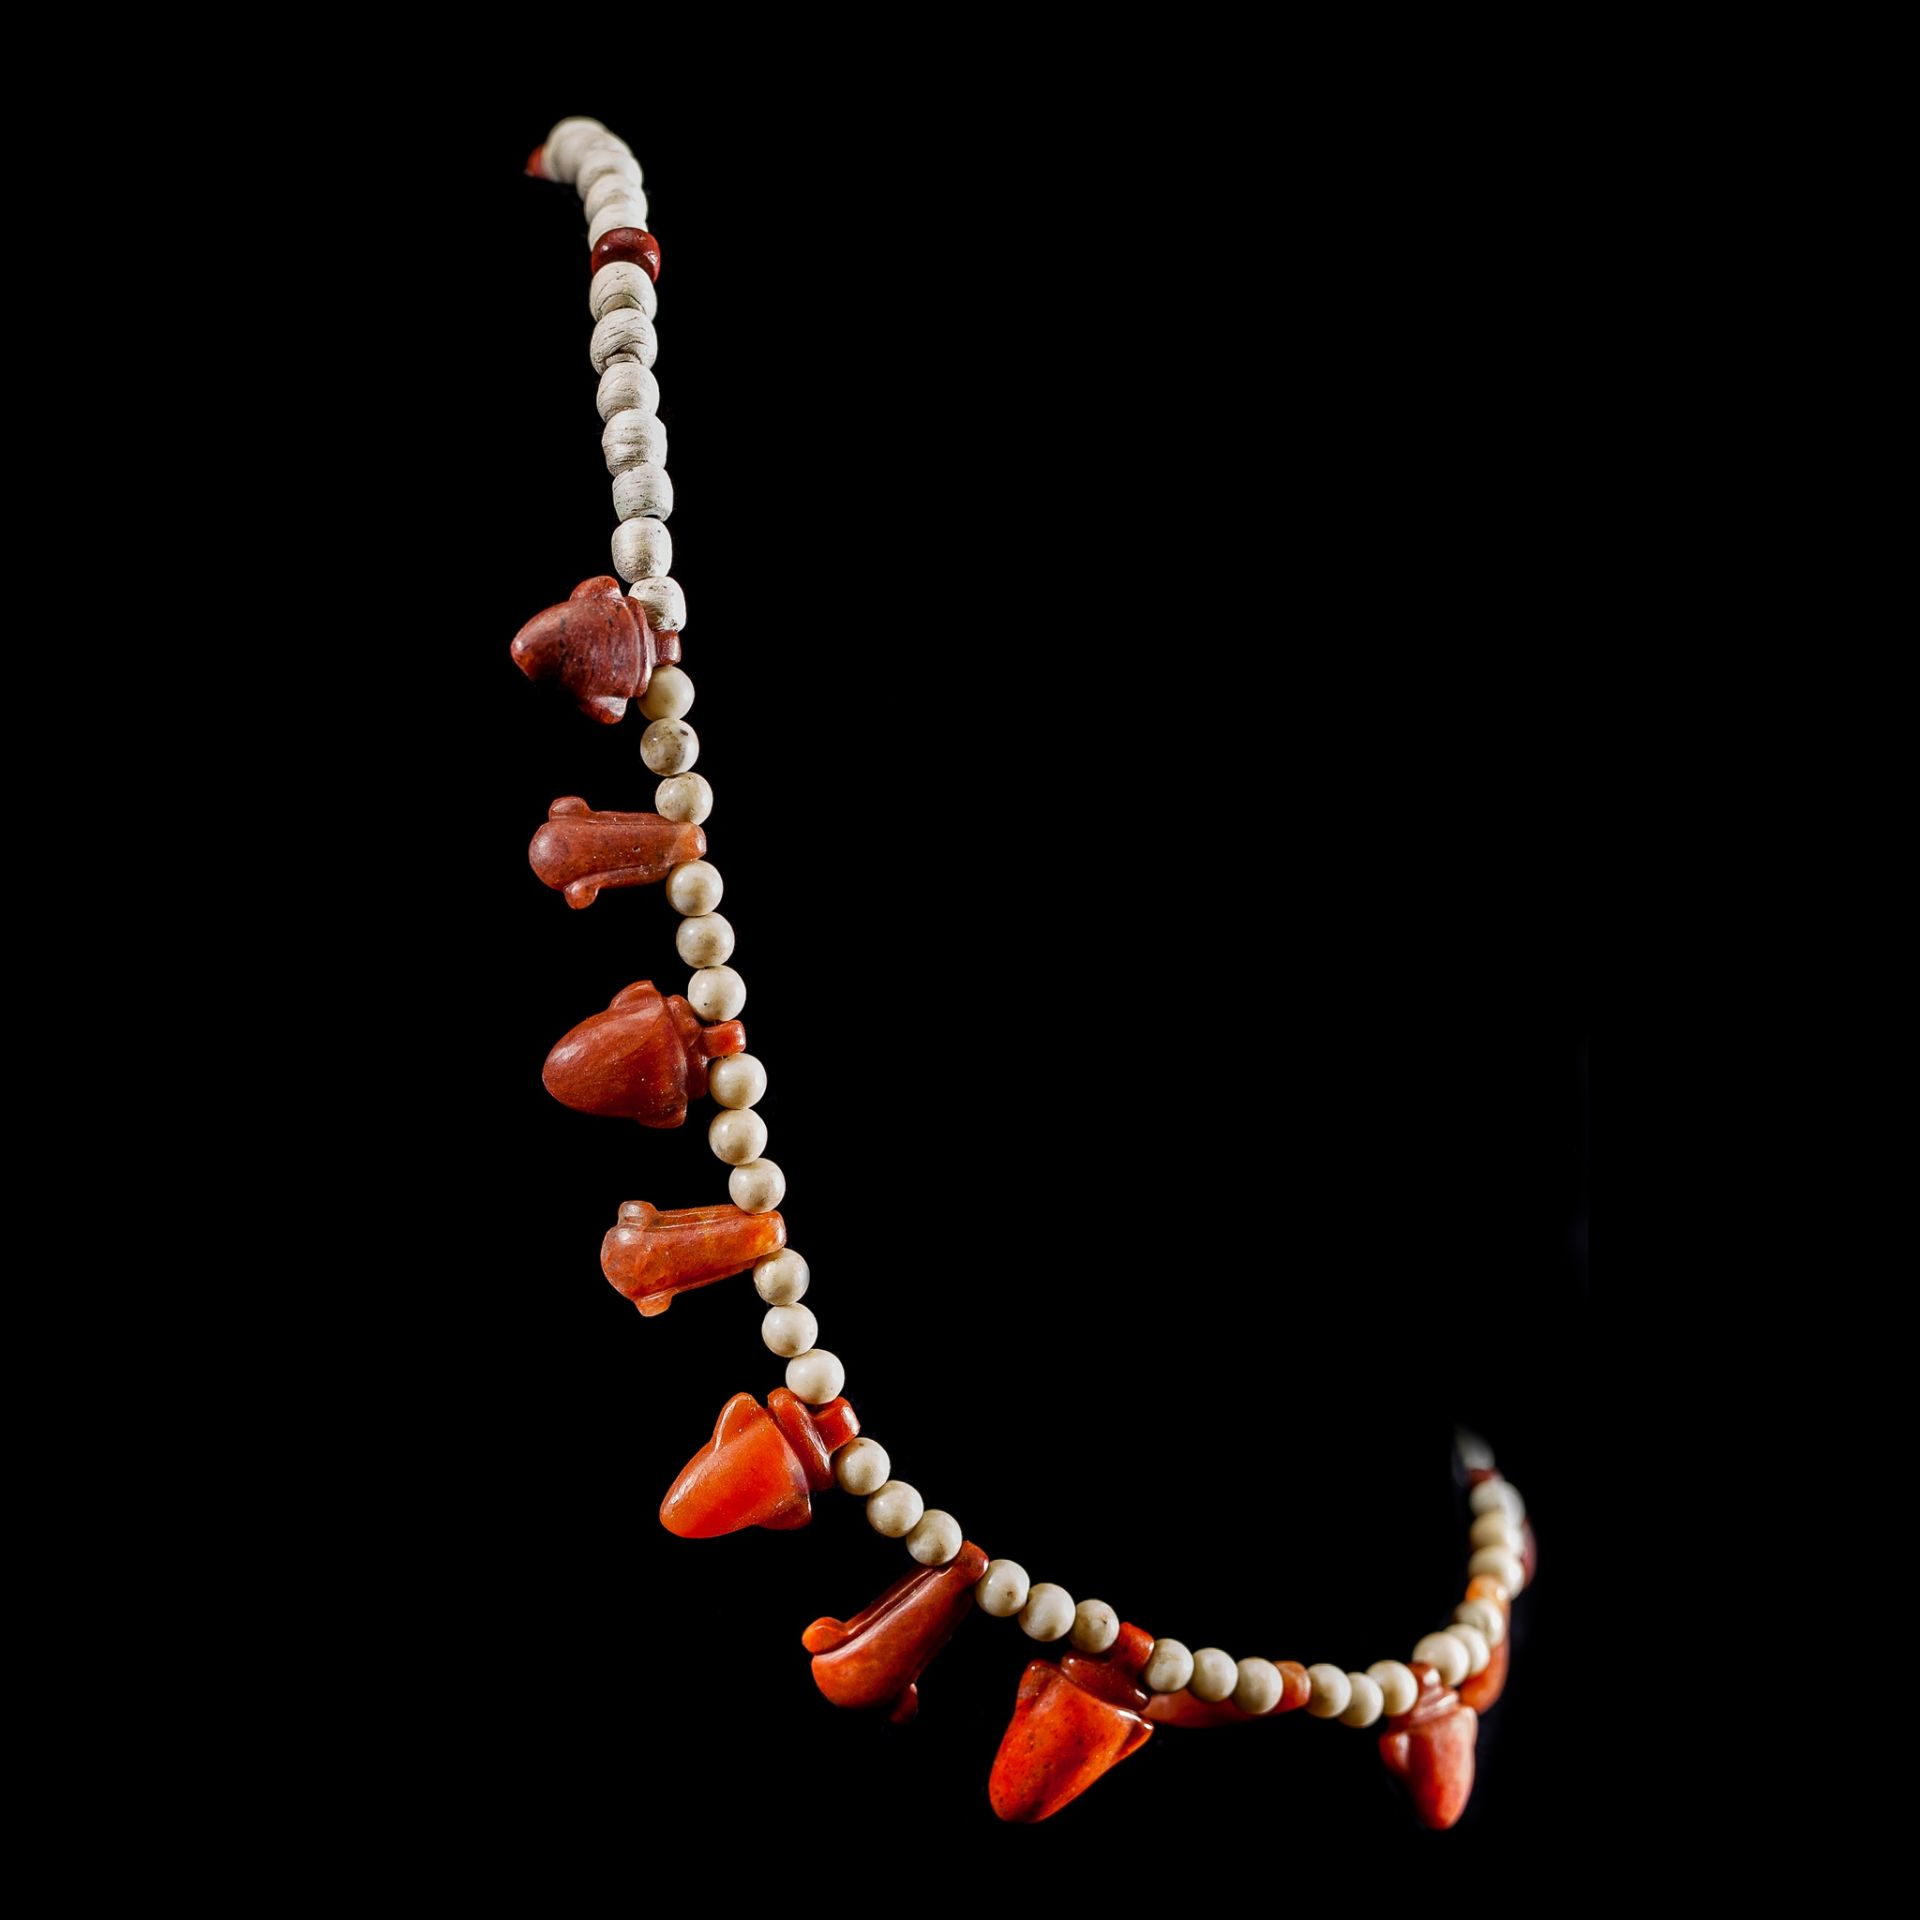 ANCIENT EGYPTIAN JASPER NECKLACE EGYPT, LATE PERIOD, 664 - 323 B.C. - Image 2 of 2